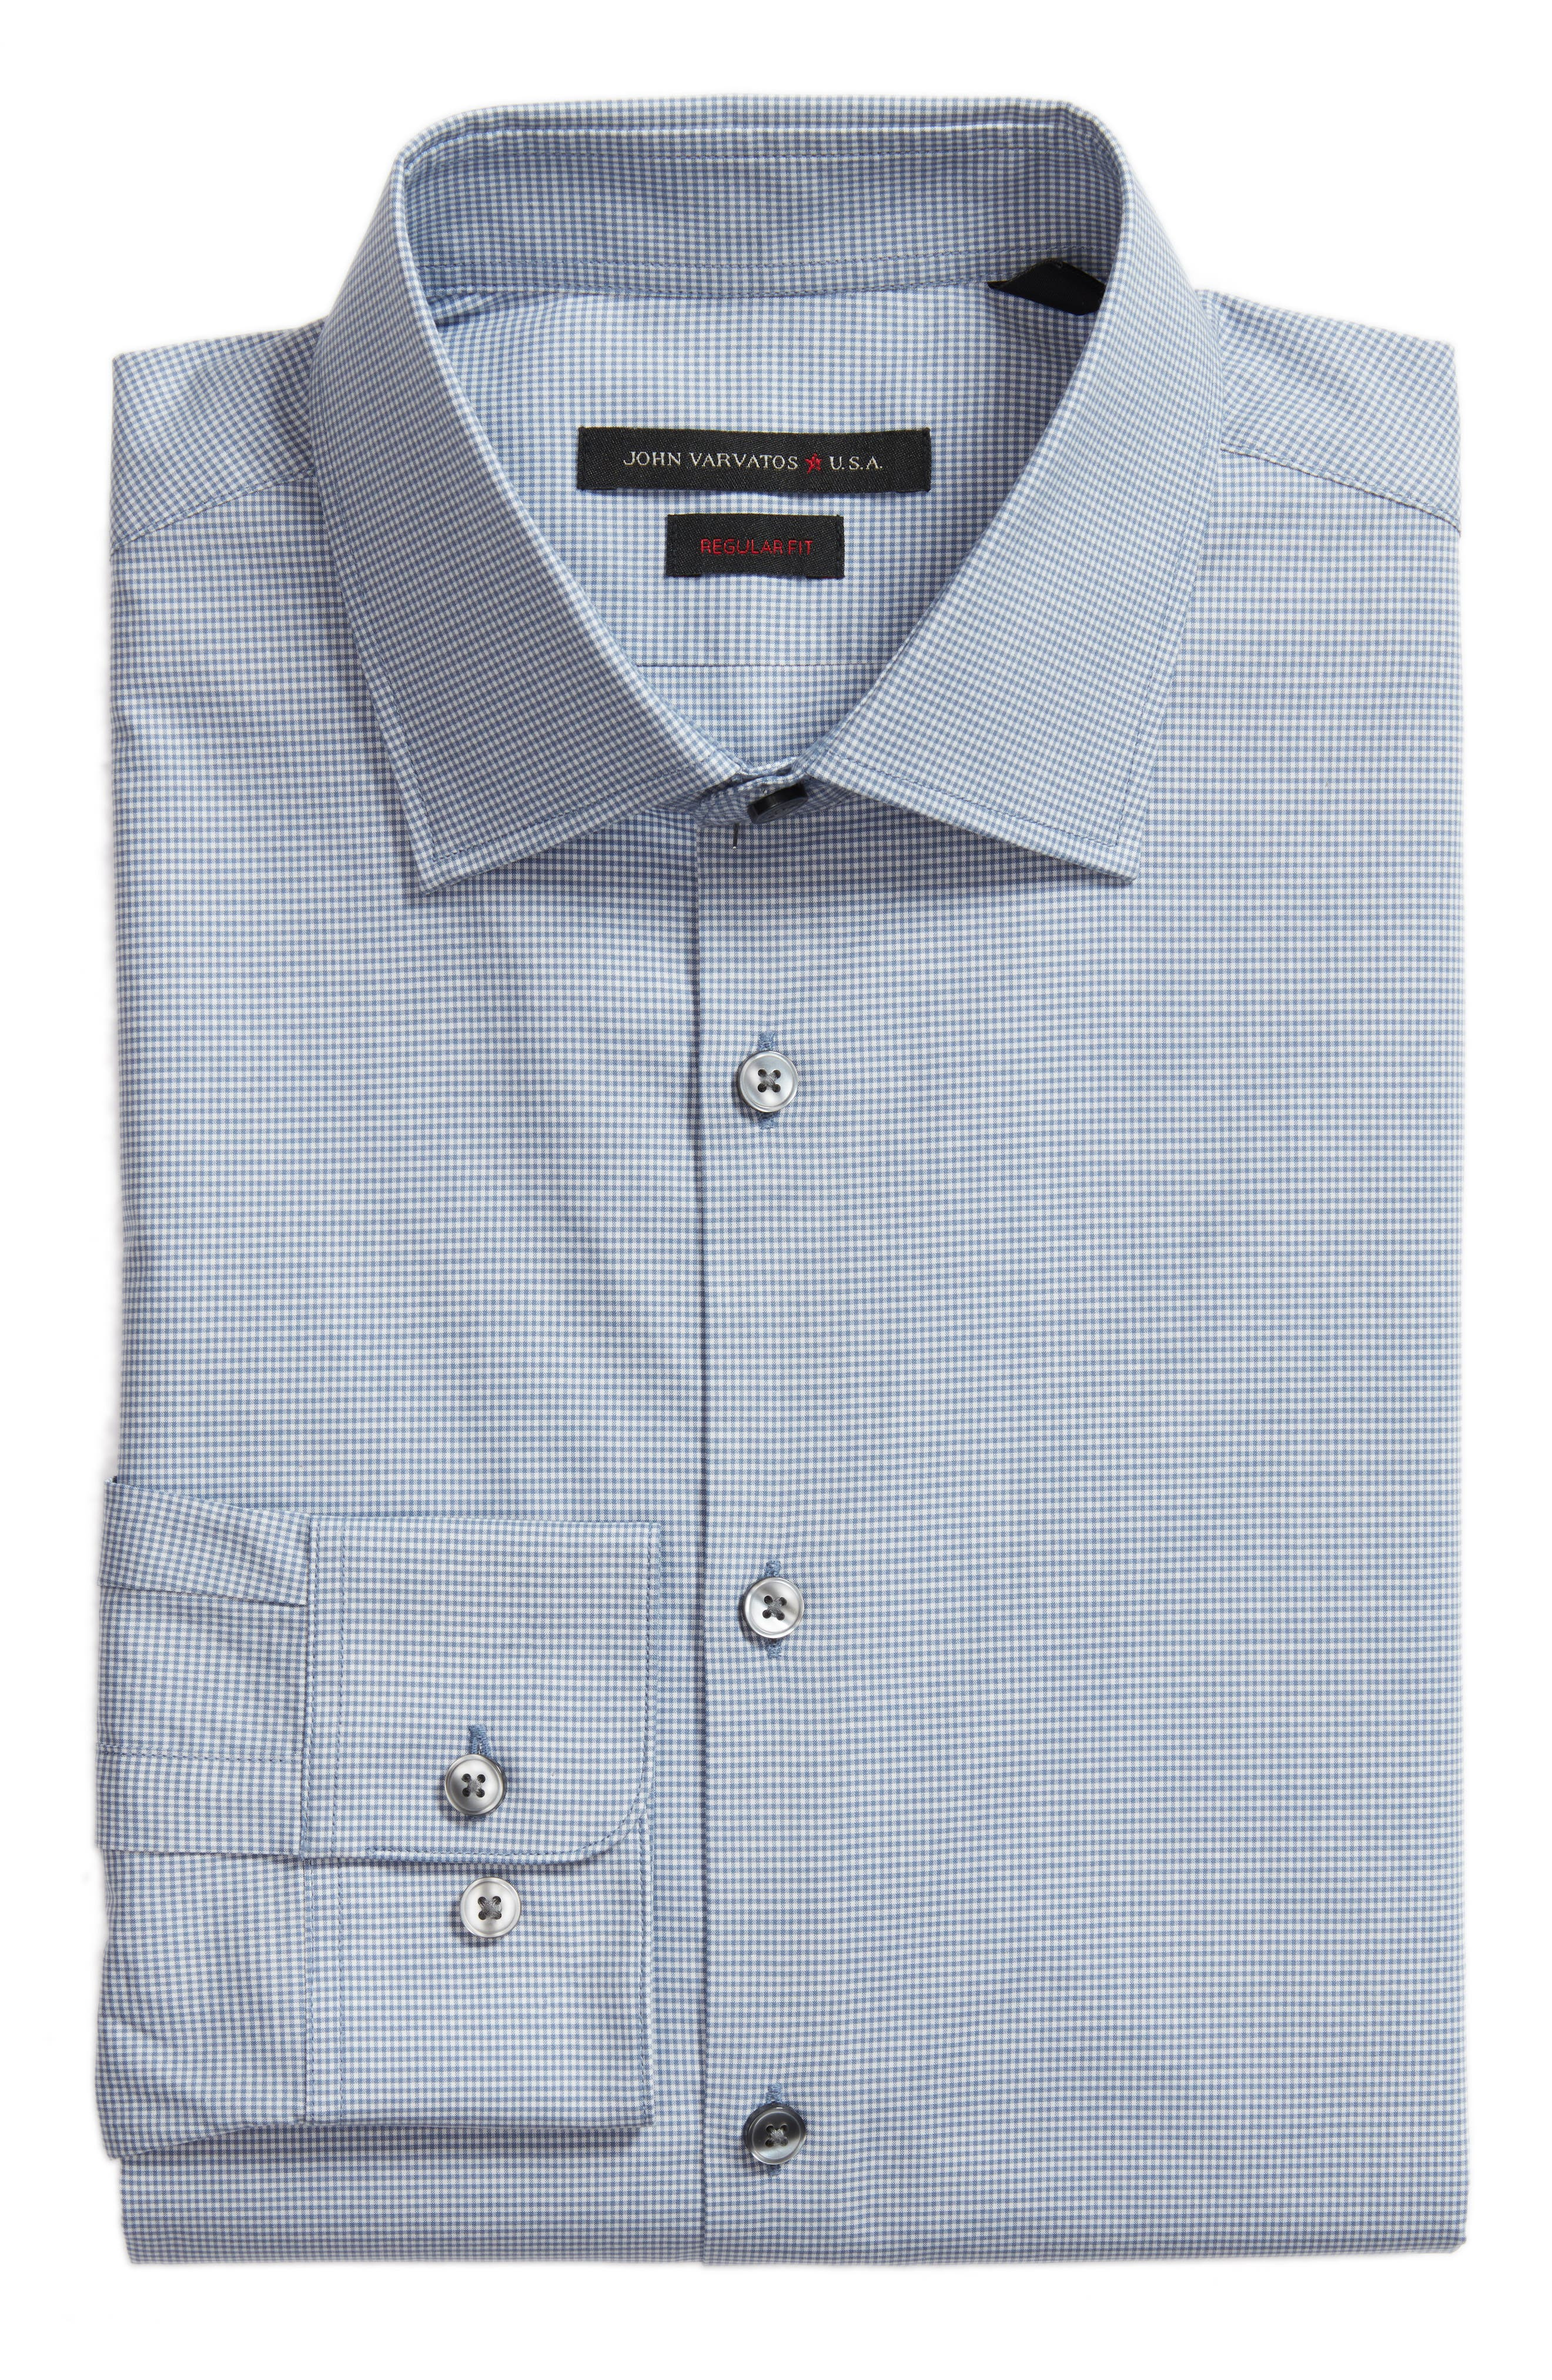 Regular Fit Stretch Microcheck Dress Shirt,                             Alternate thumbnail 6, color,                             Dusted Blue